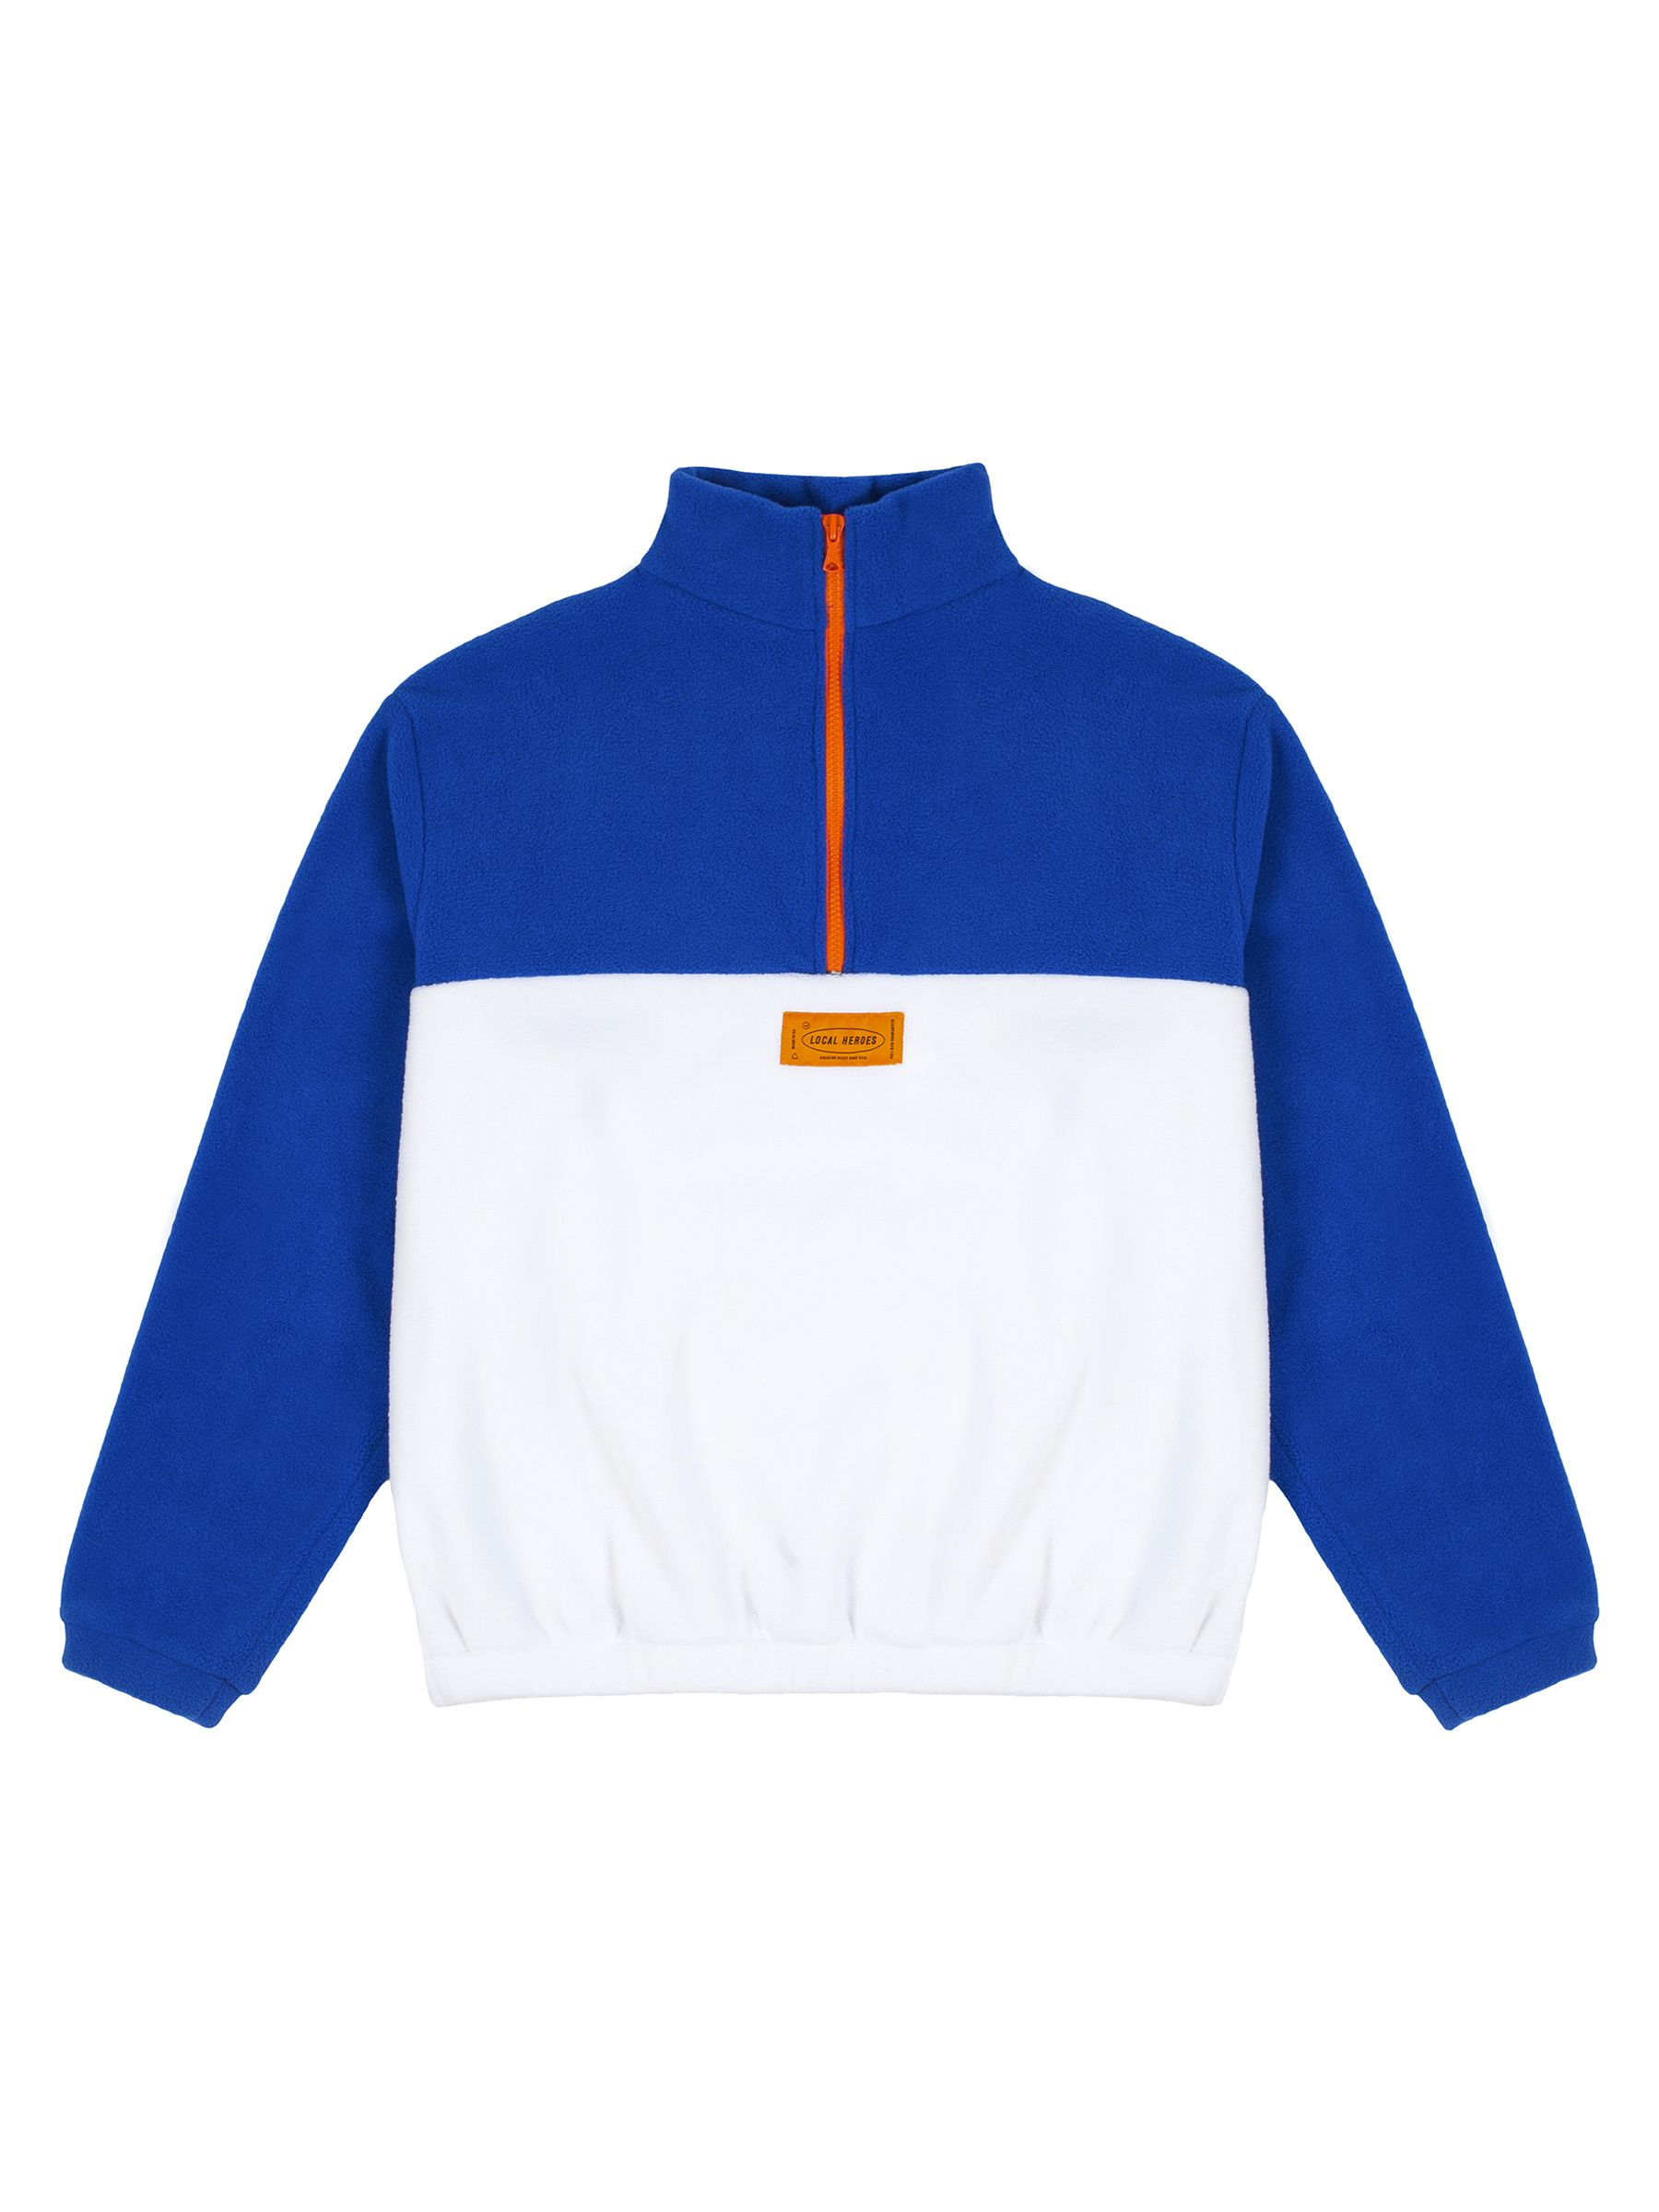 WHITE AND BLUE FLEECE SWEATSHIRT